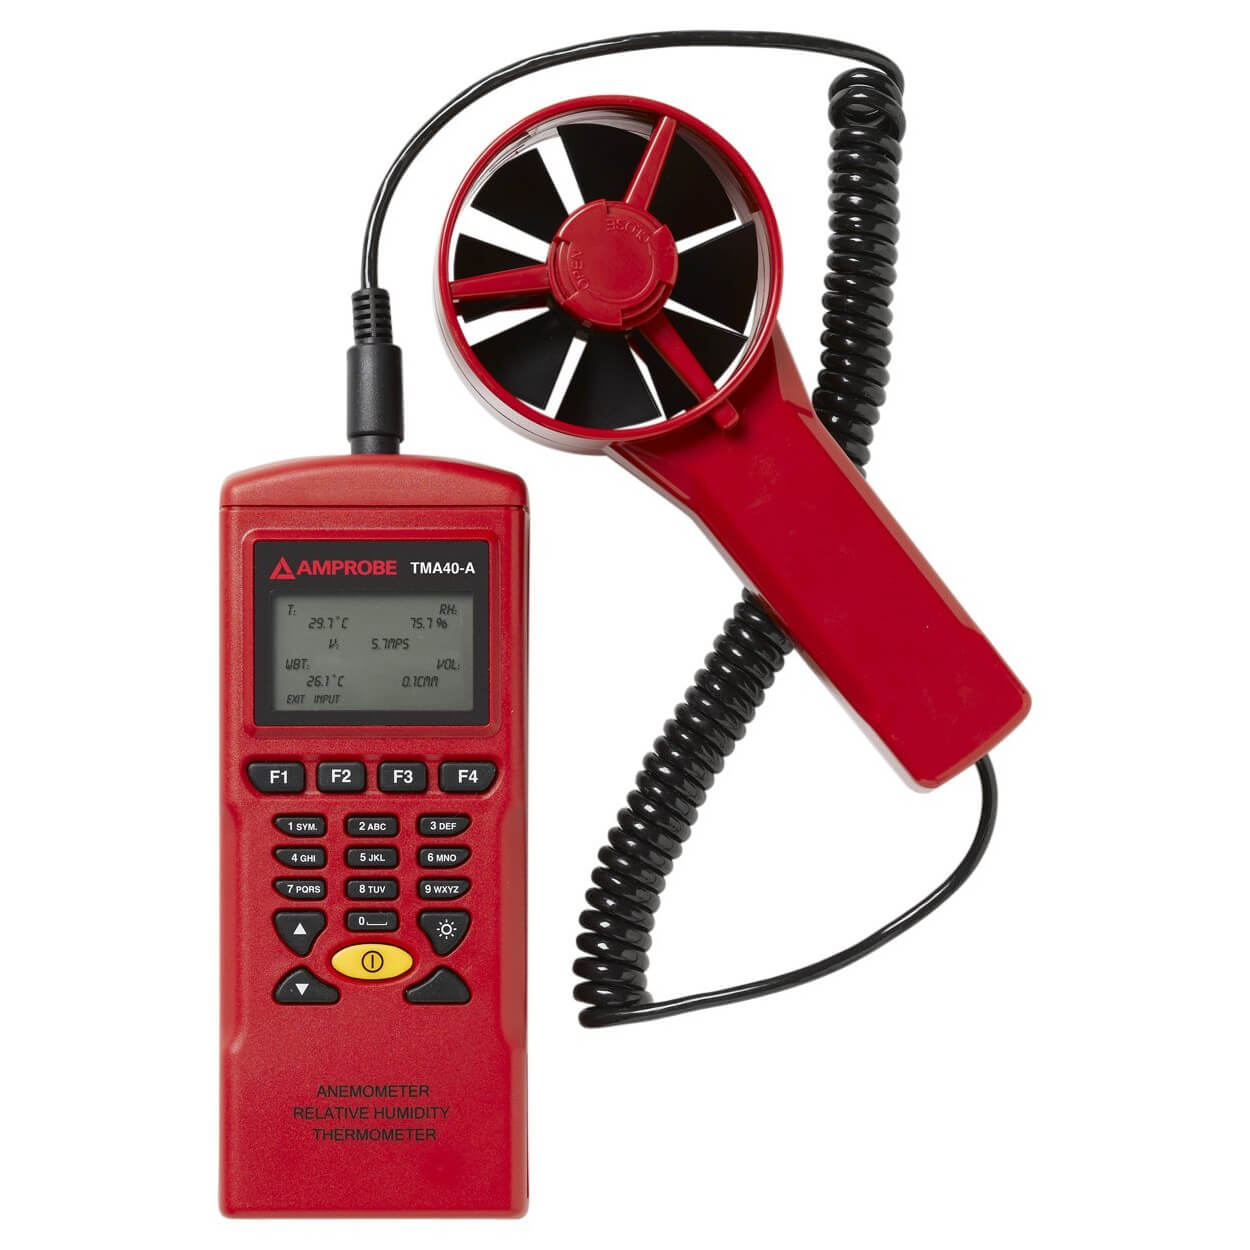 Amprobe TMA40-A Digital Anemometer with Datalogging